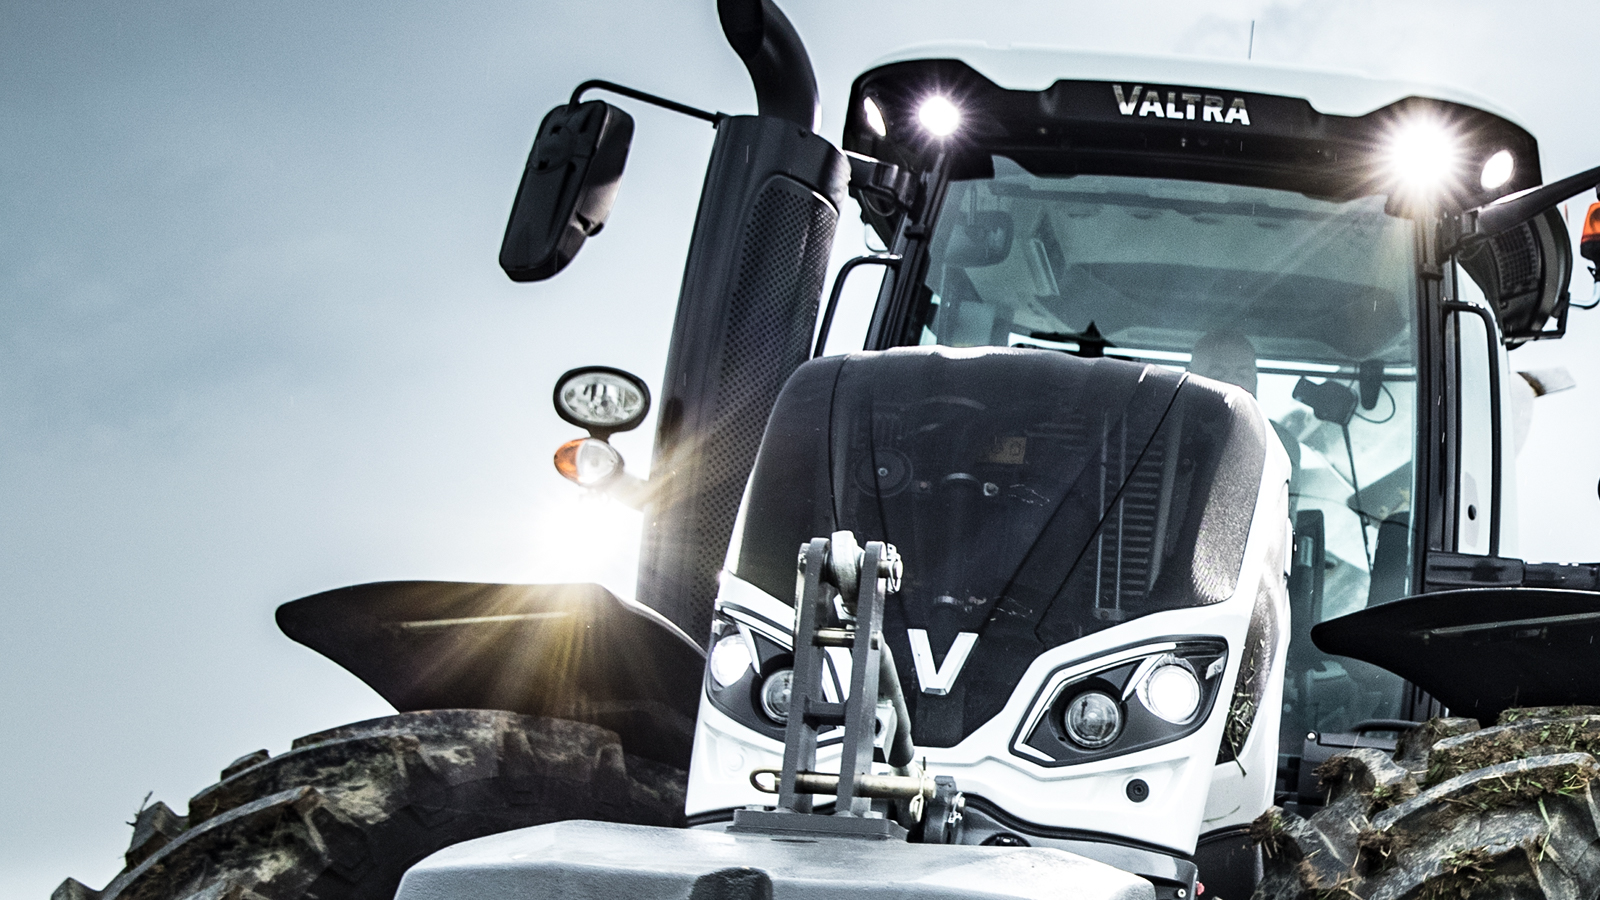 valtra tractor white front